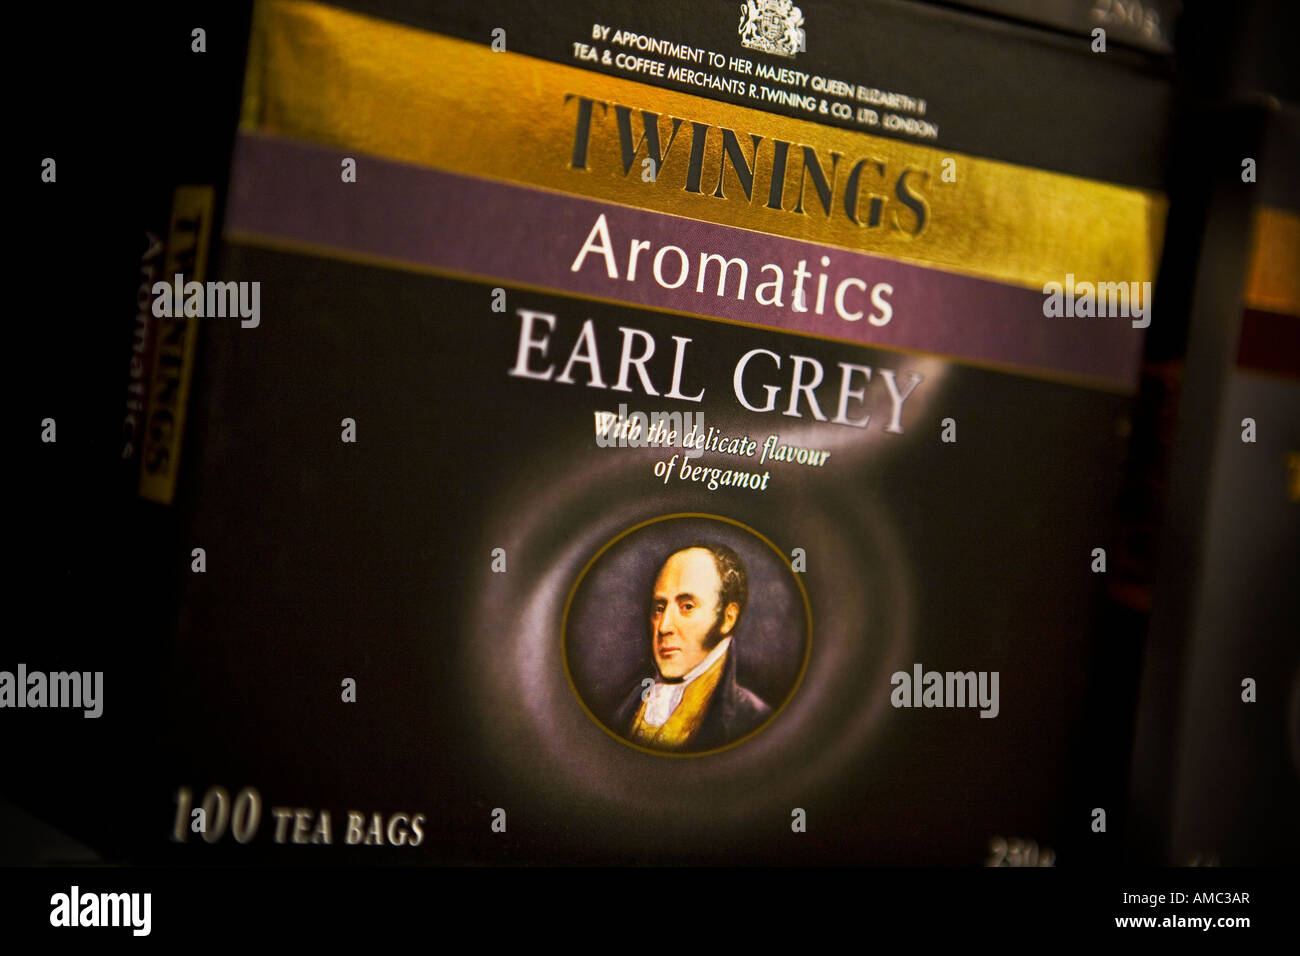 Twinings Earl Grey tea bags Twinings is an Associated British Foods brand - Stock Image